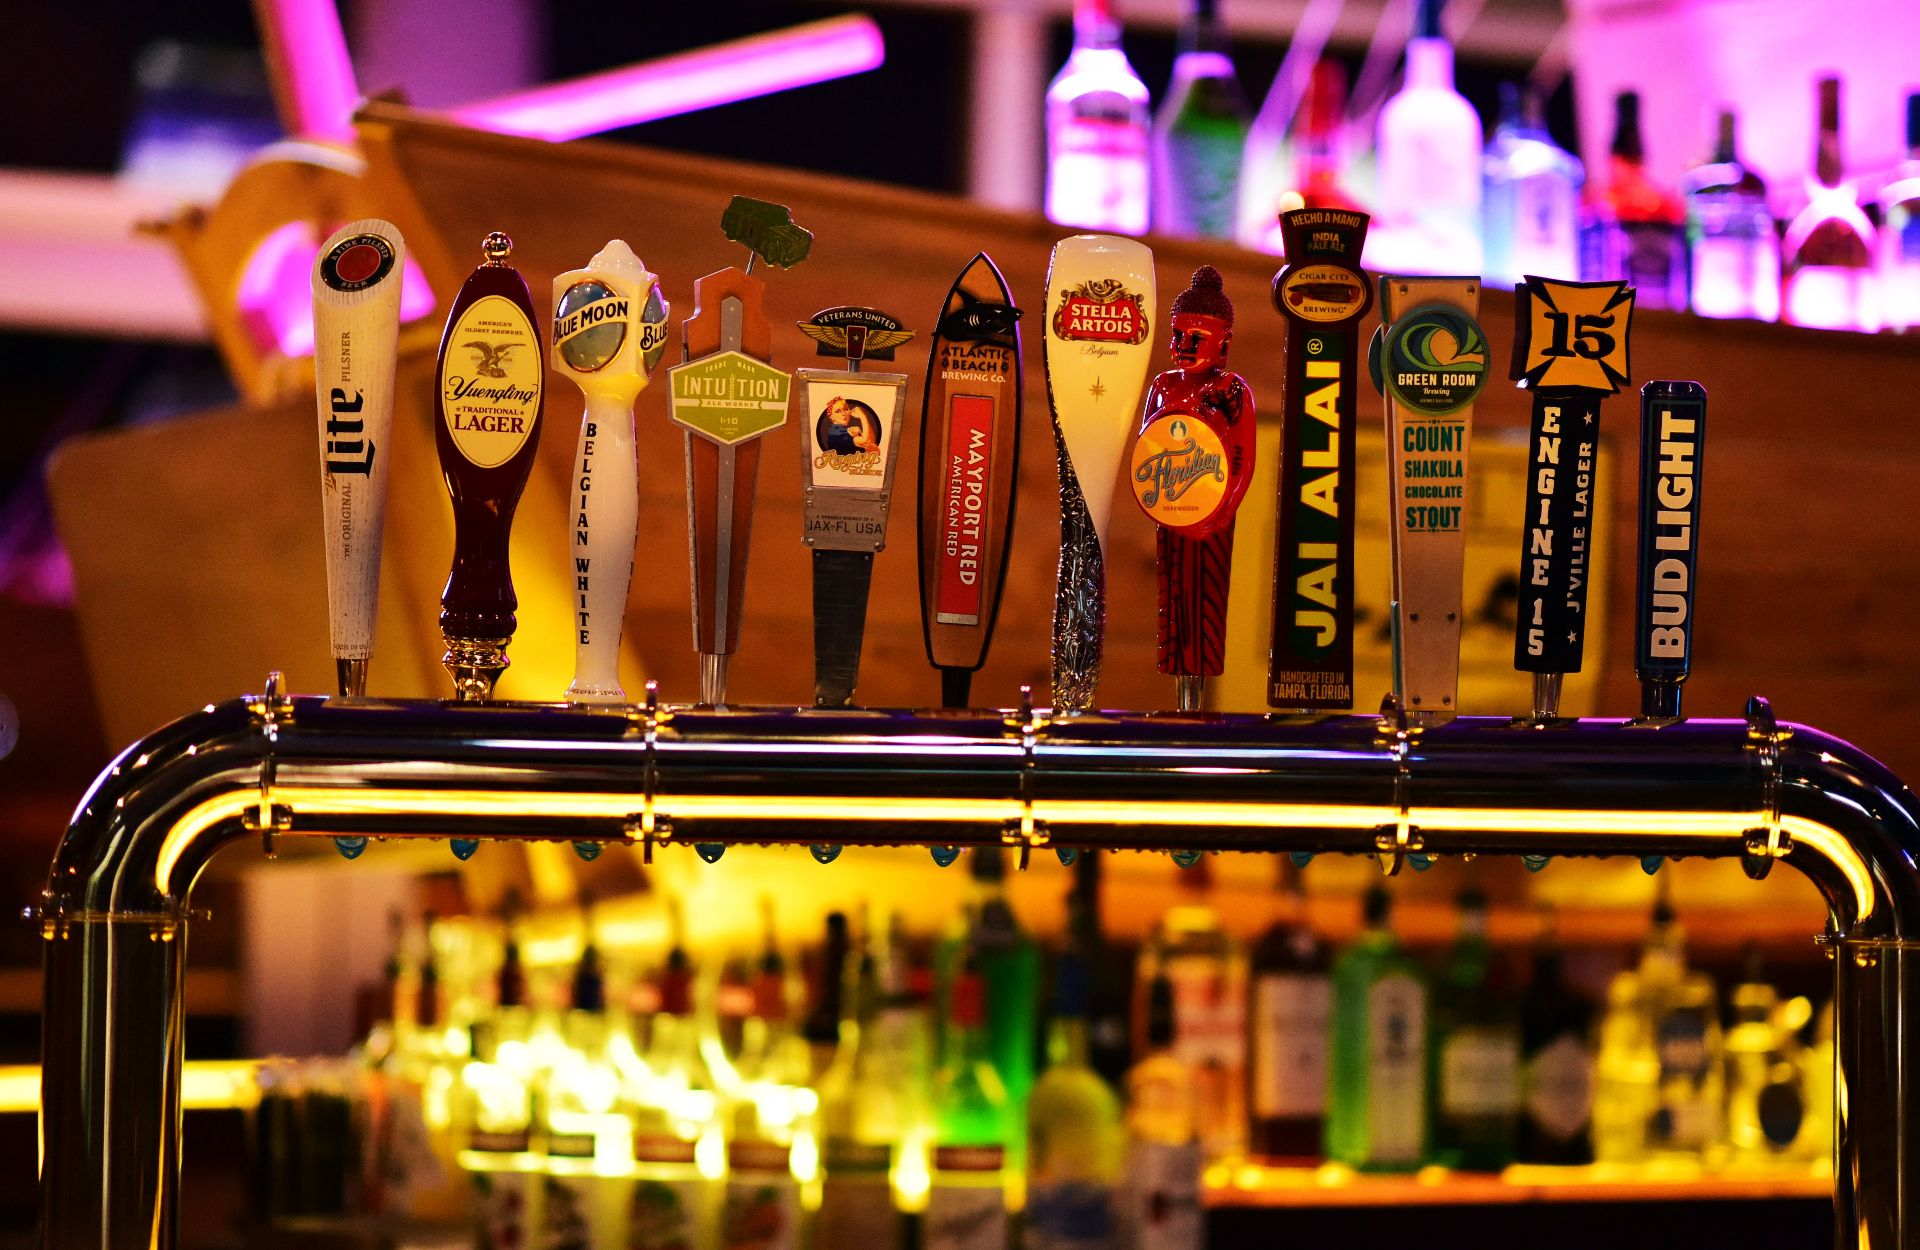 Assorted beer brands on beer tap handles